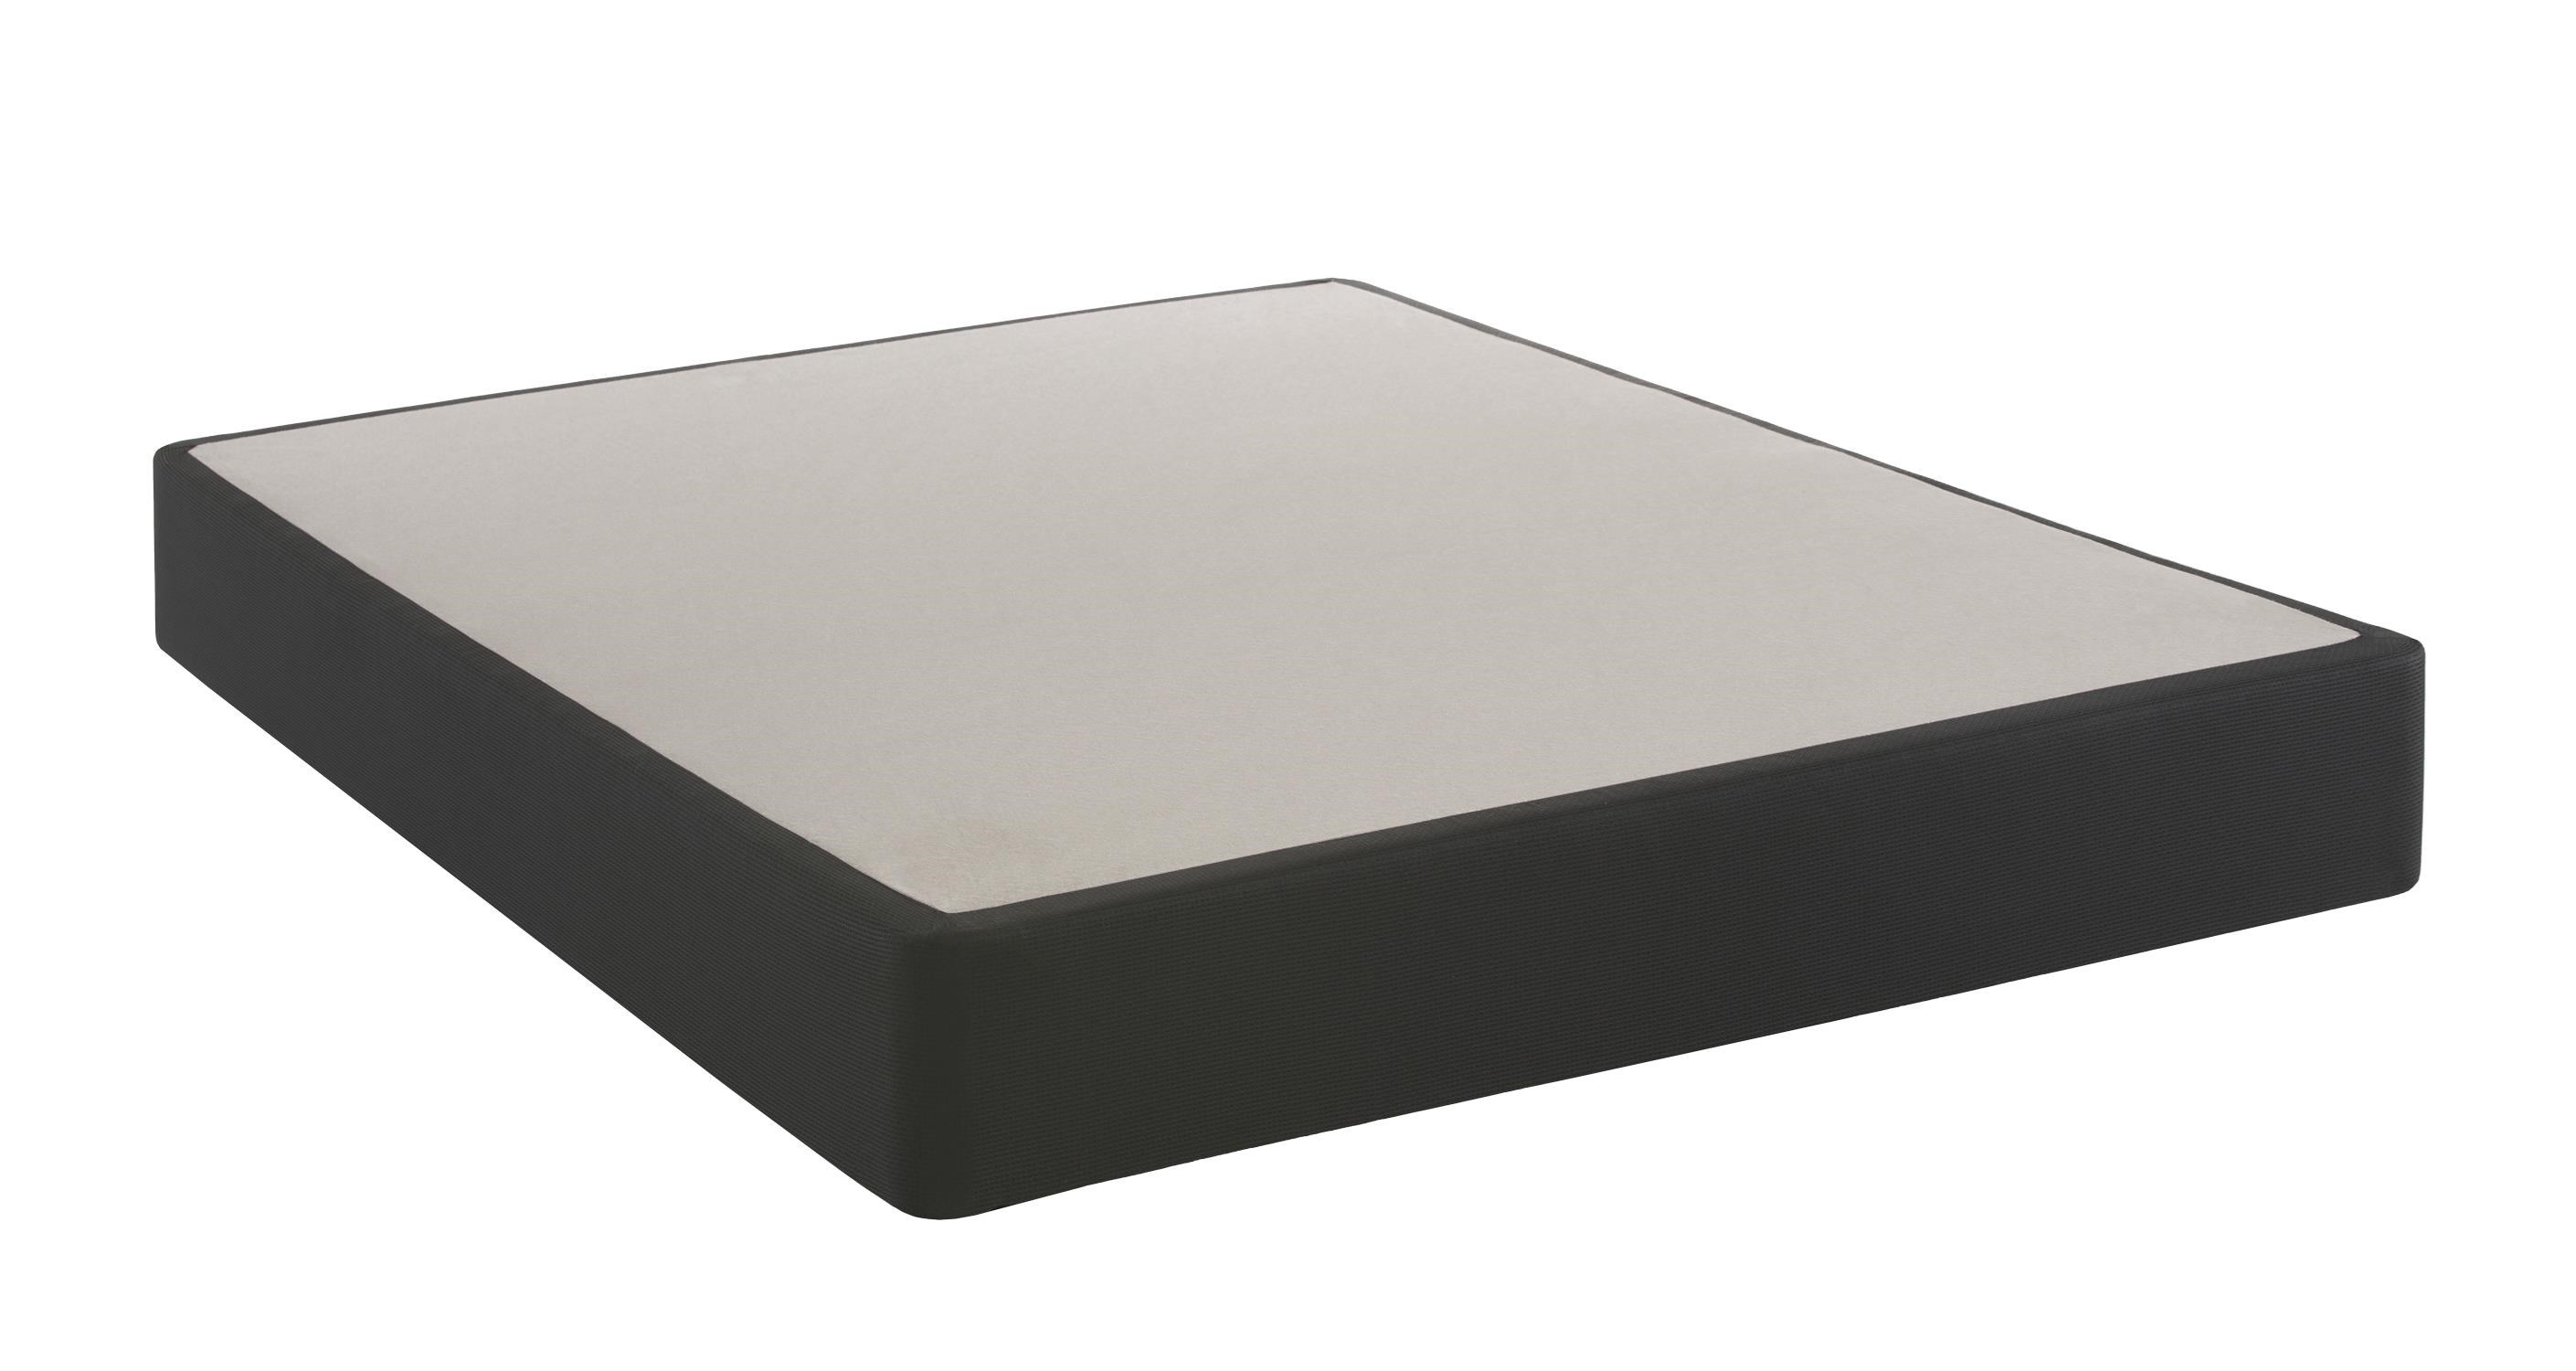 """2017 StableSupport Foundations Full Standard Base 9"""" Height by Sealy at Morris Home"""